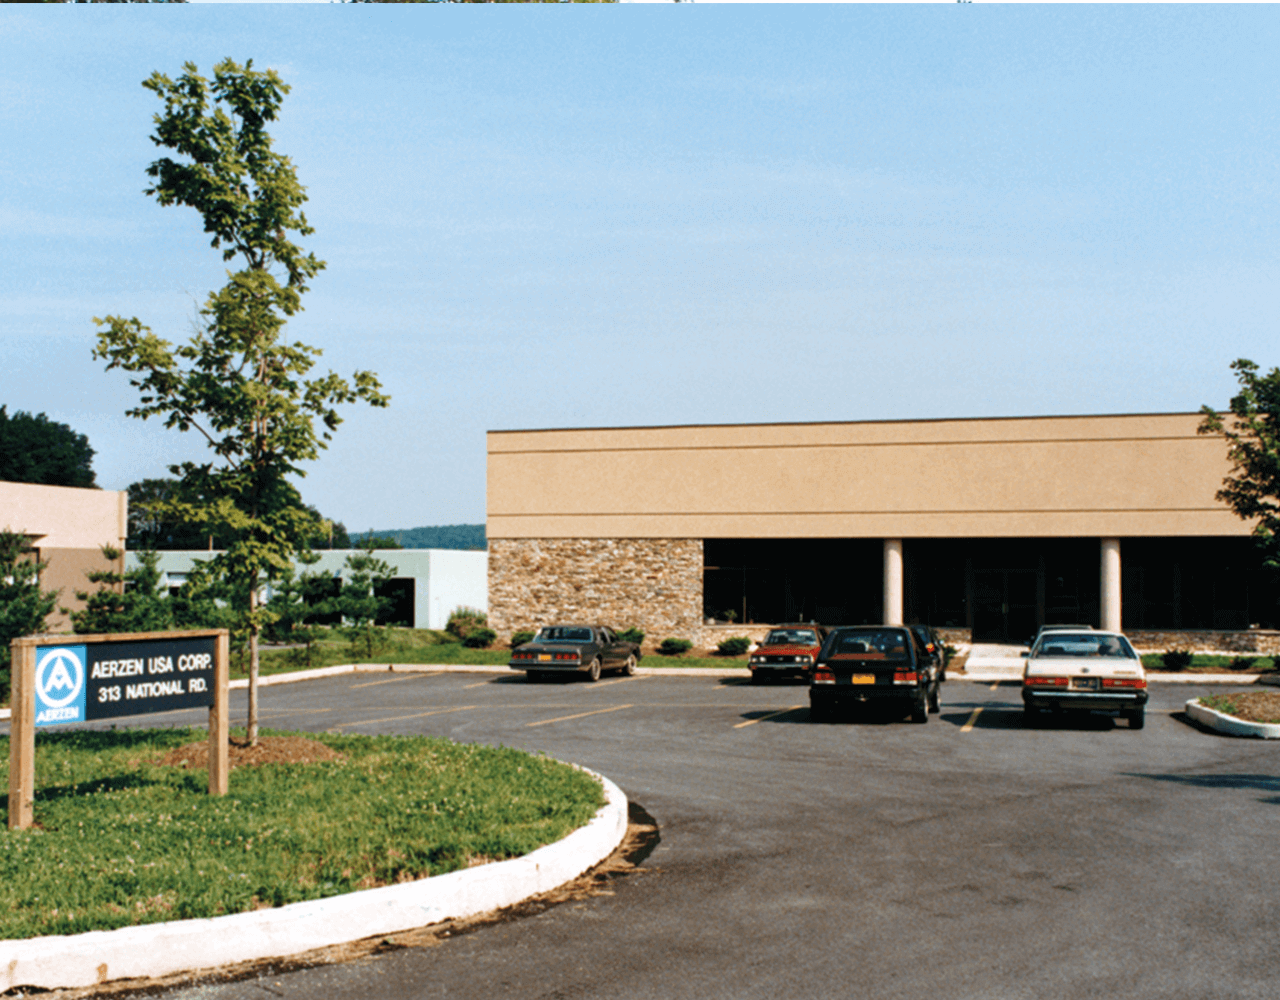 Picture of the building of the subsidiaries Aerzen USA Corporation